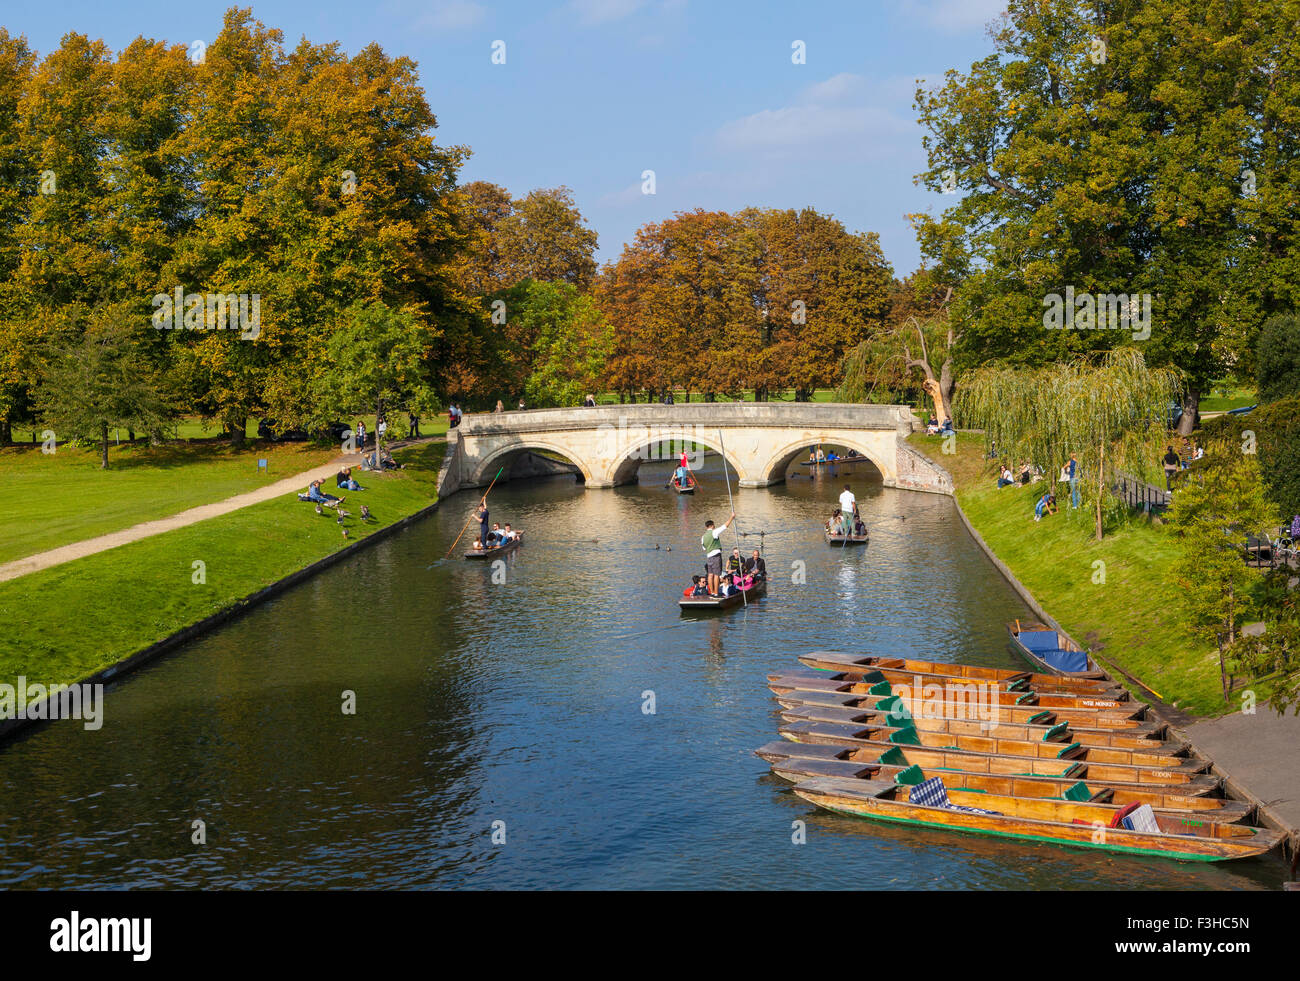 A view over the River Cam in Cambridge looking towards Trinity Bridge. - Stock Image